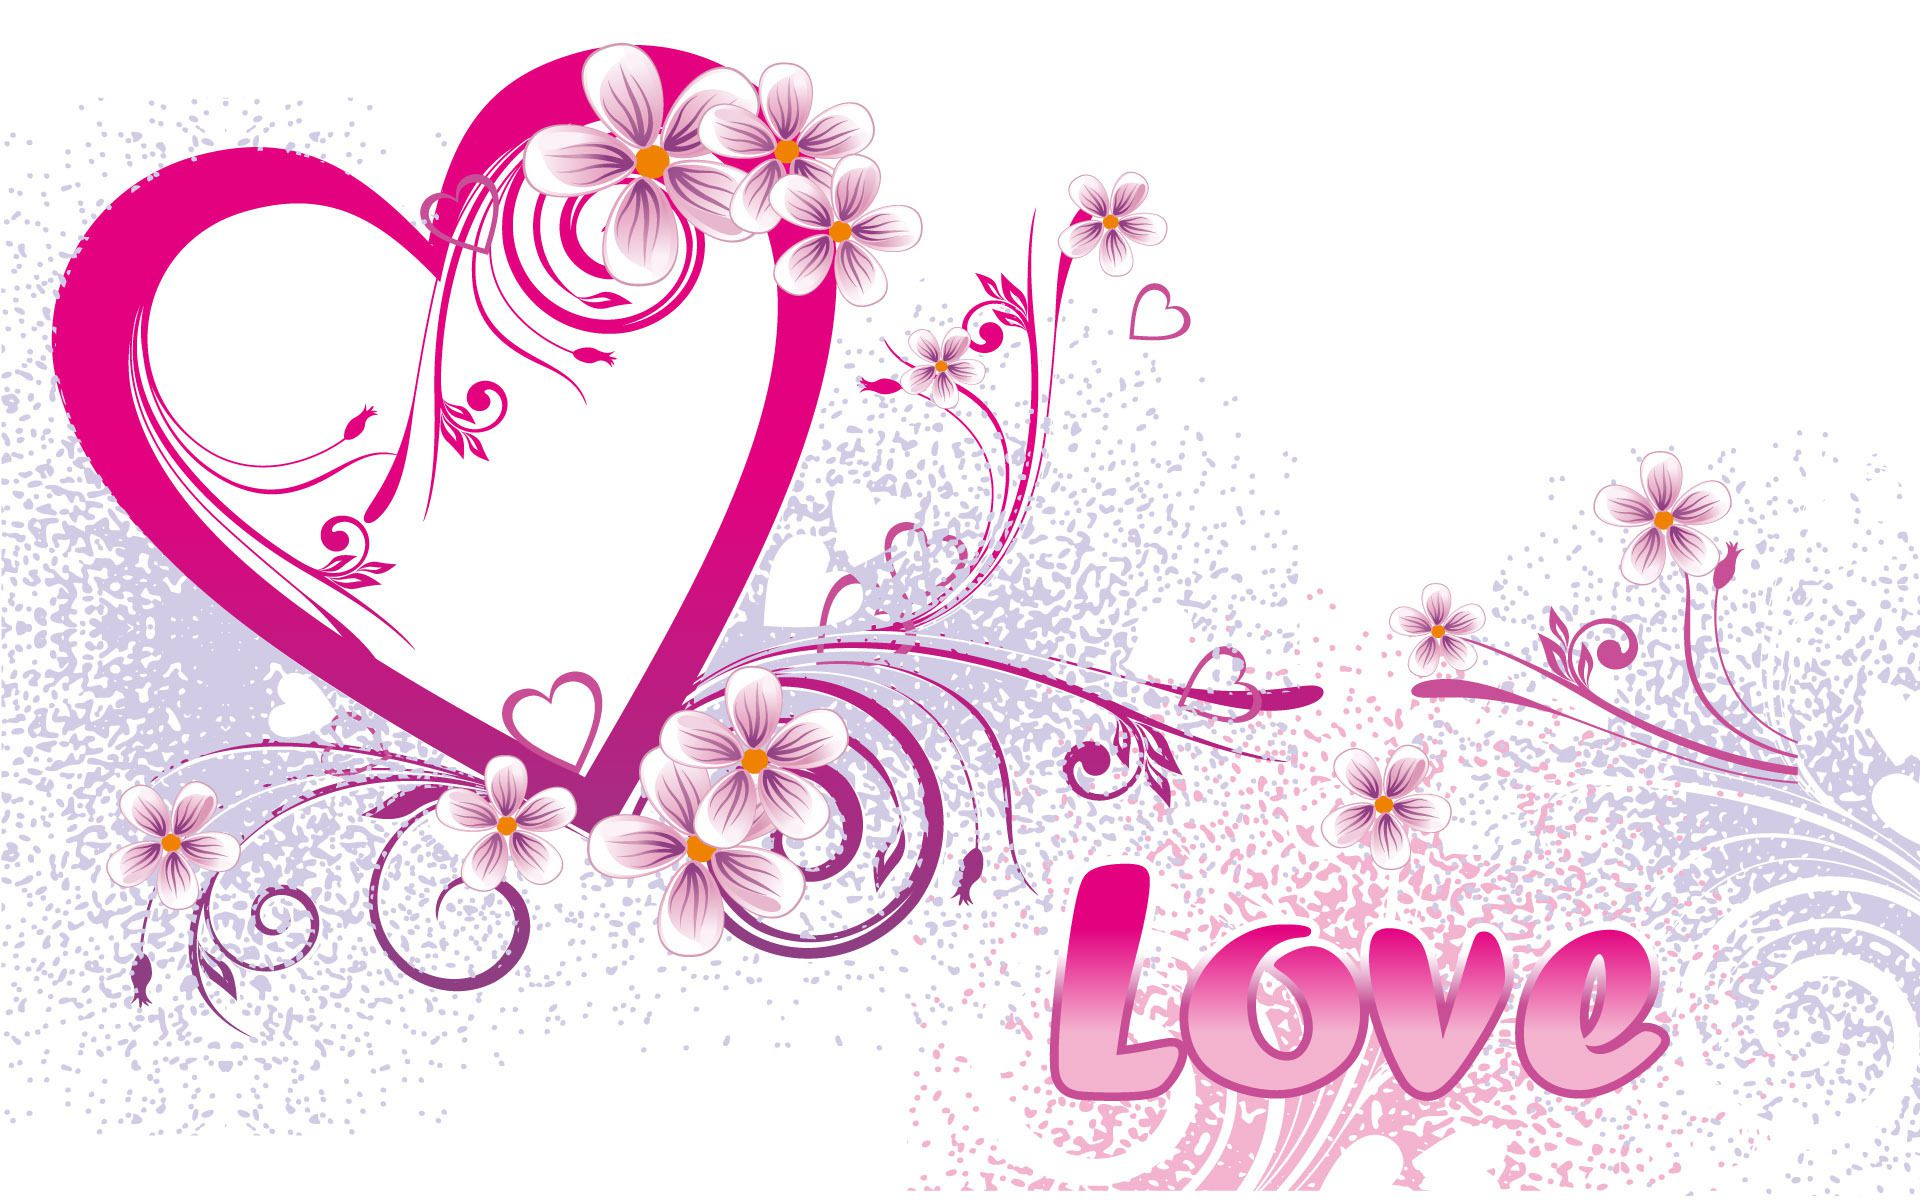 Love Wallpapers In Portuguese : love Full HD Papel de Parede and Background Image 1920x1200 ID:480697